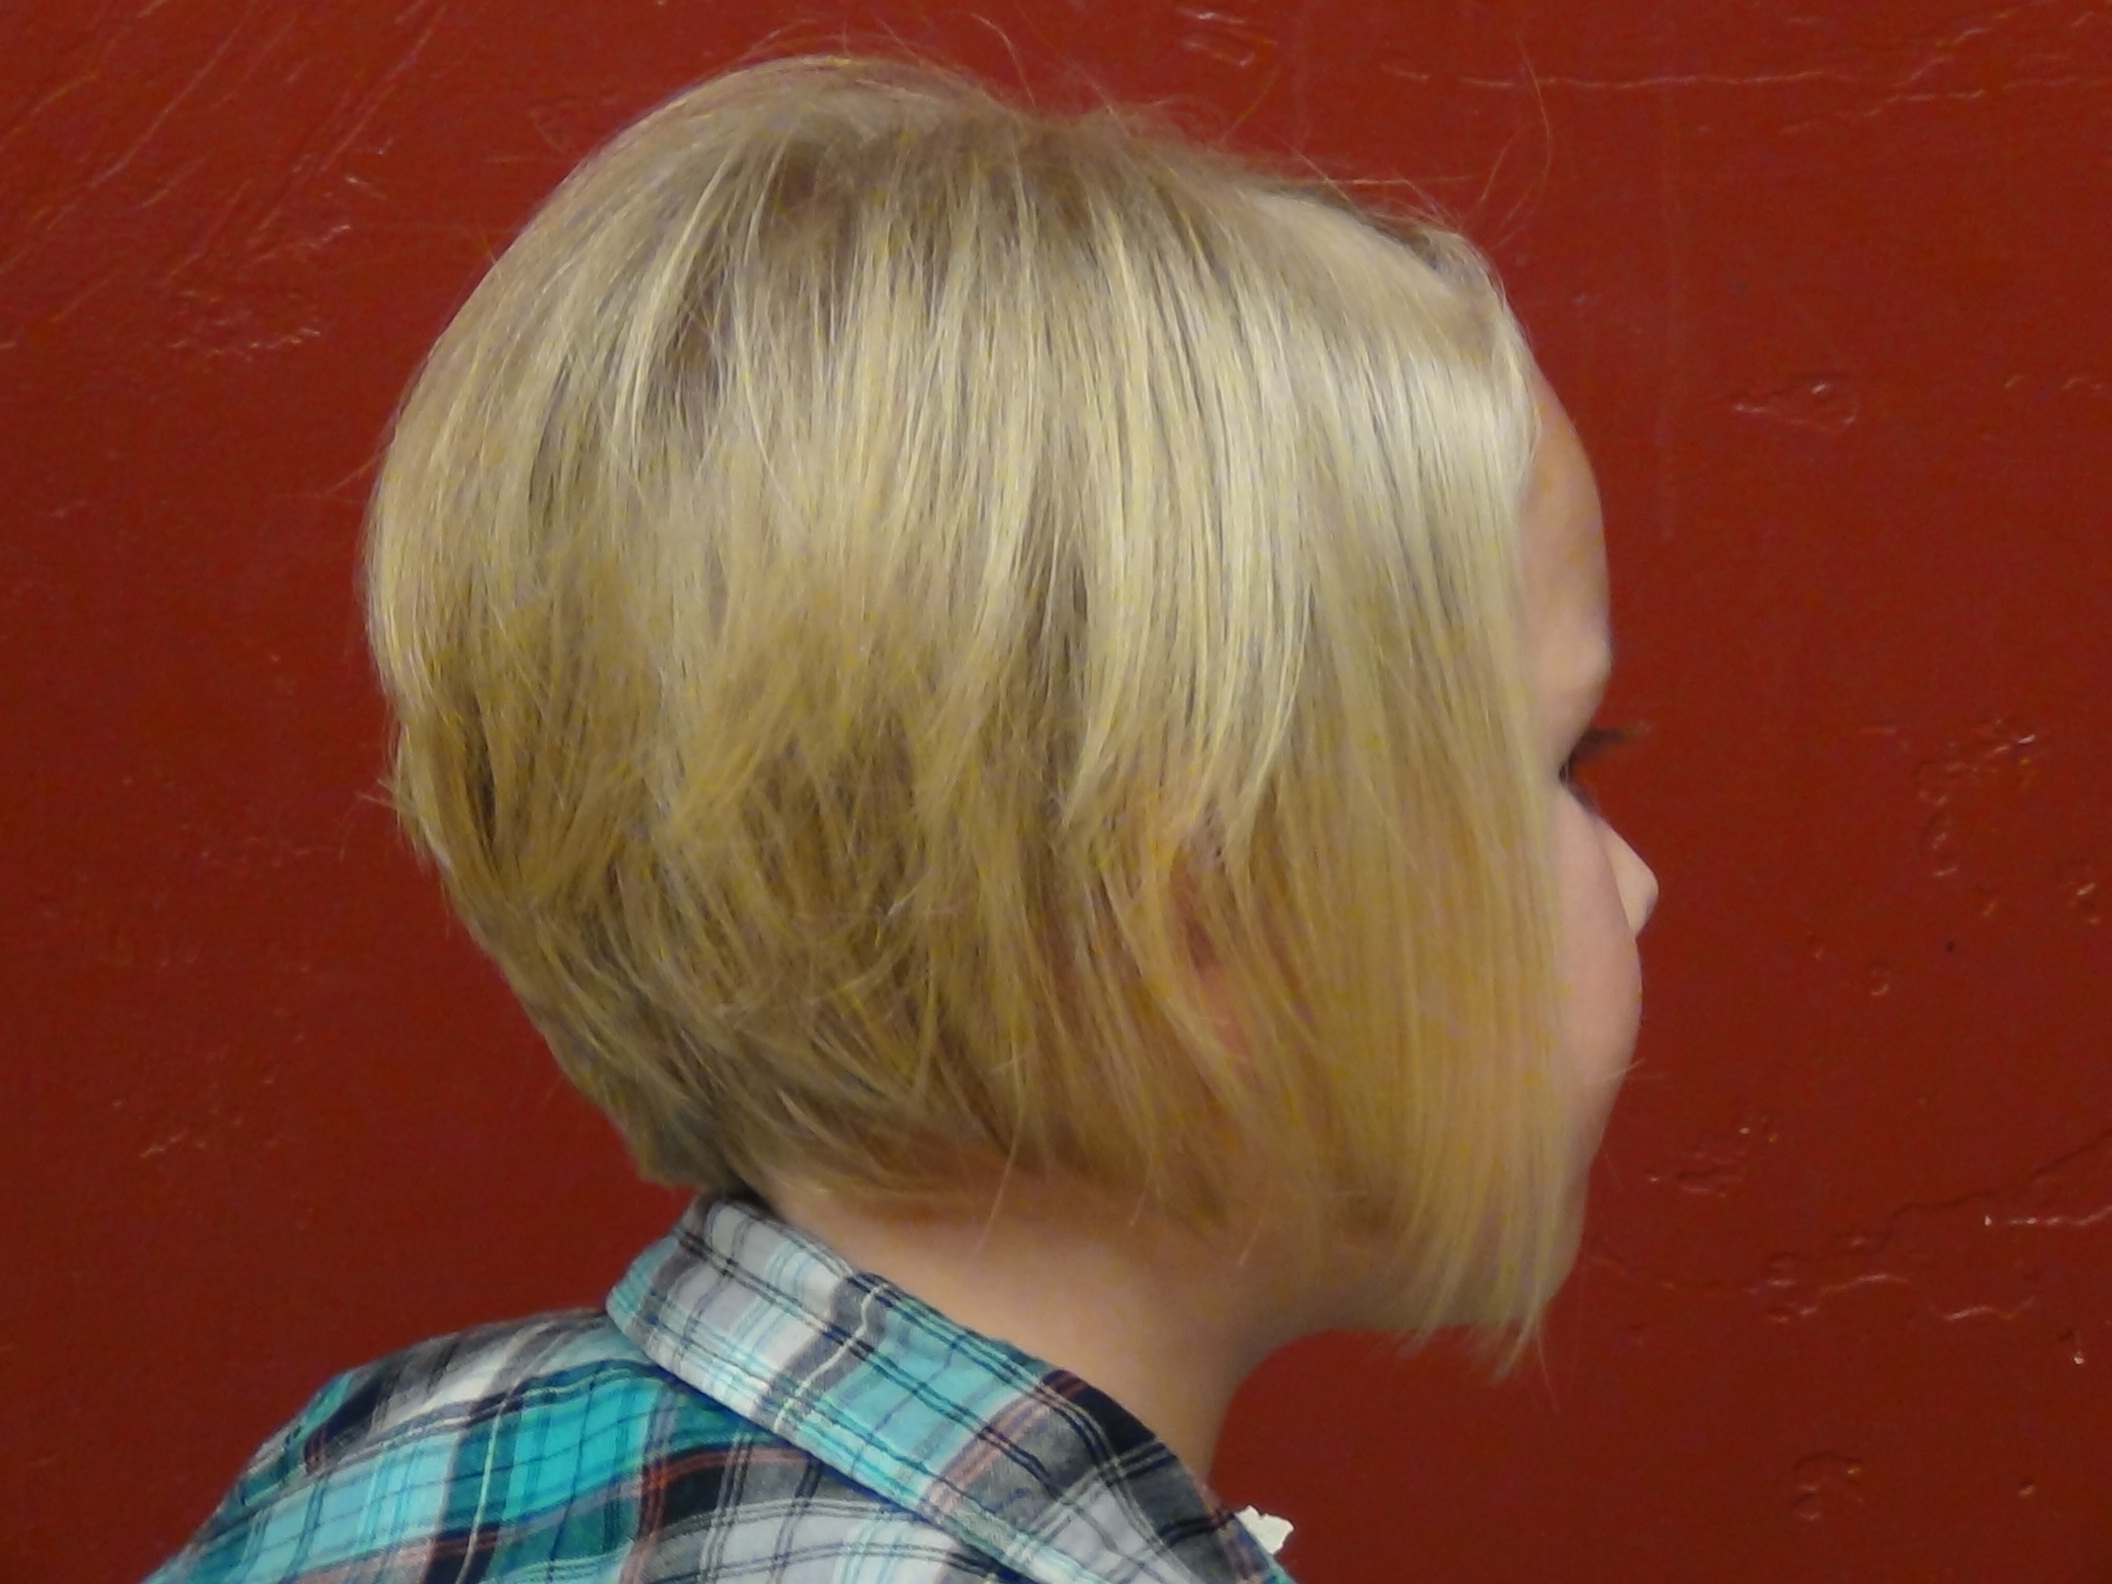 A Line Bob Haircut For Little Girl Hairstyles Boys And Girls